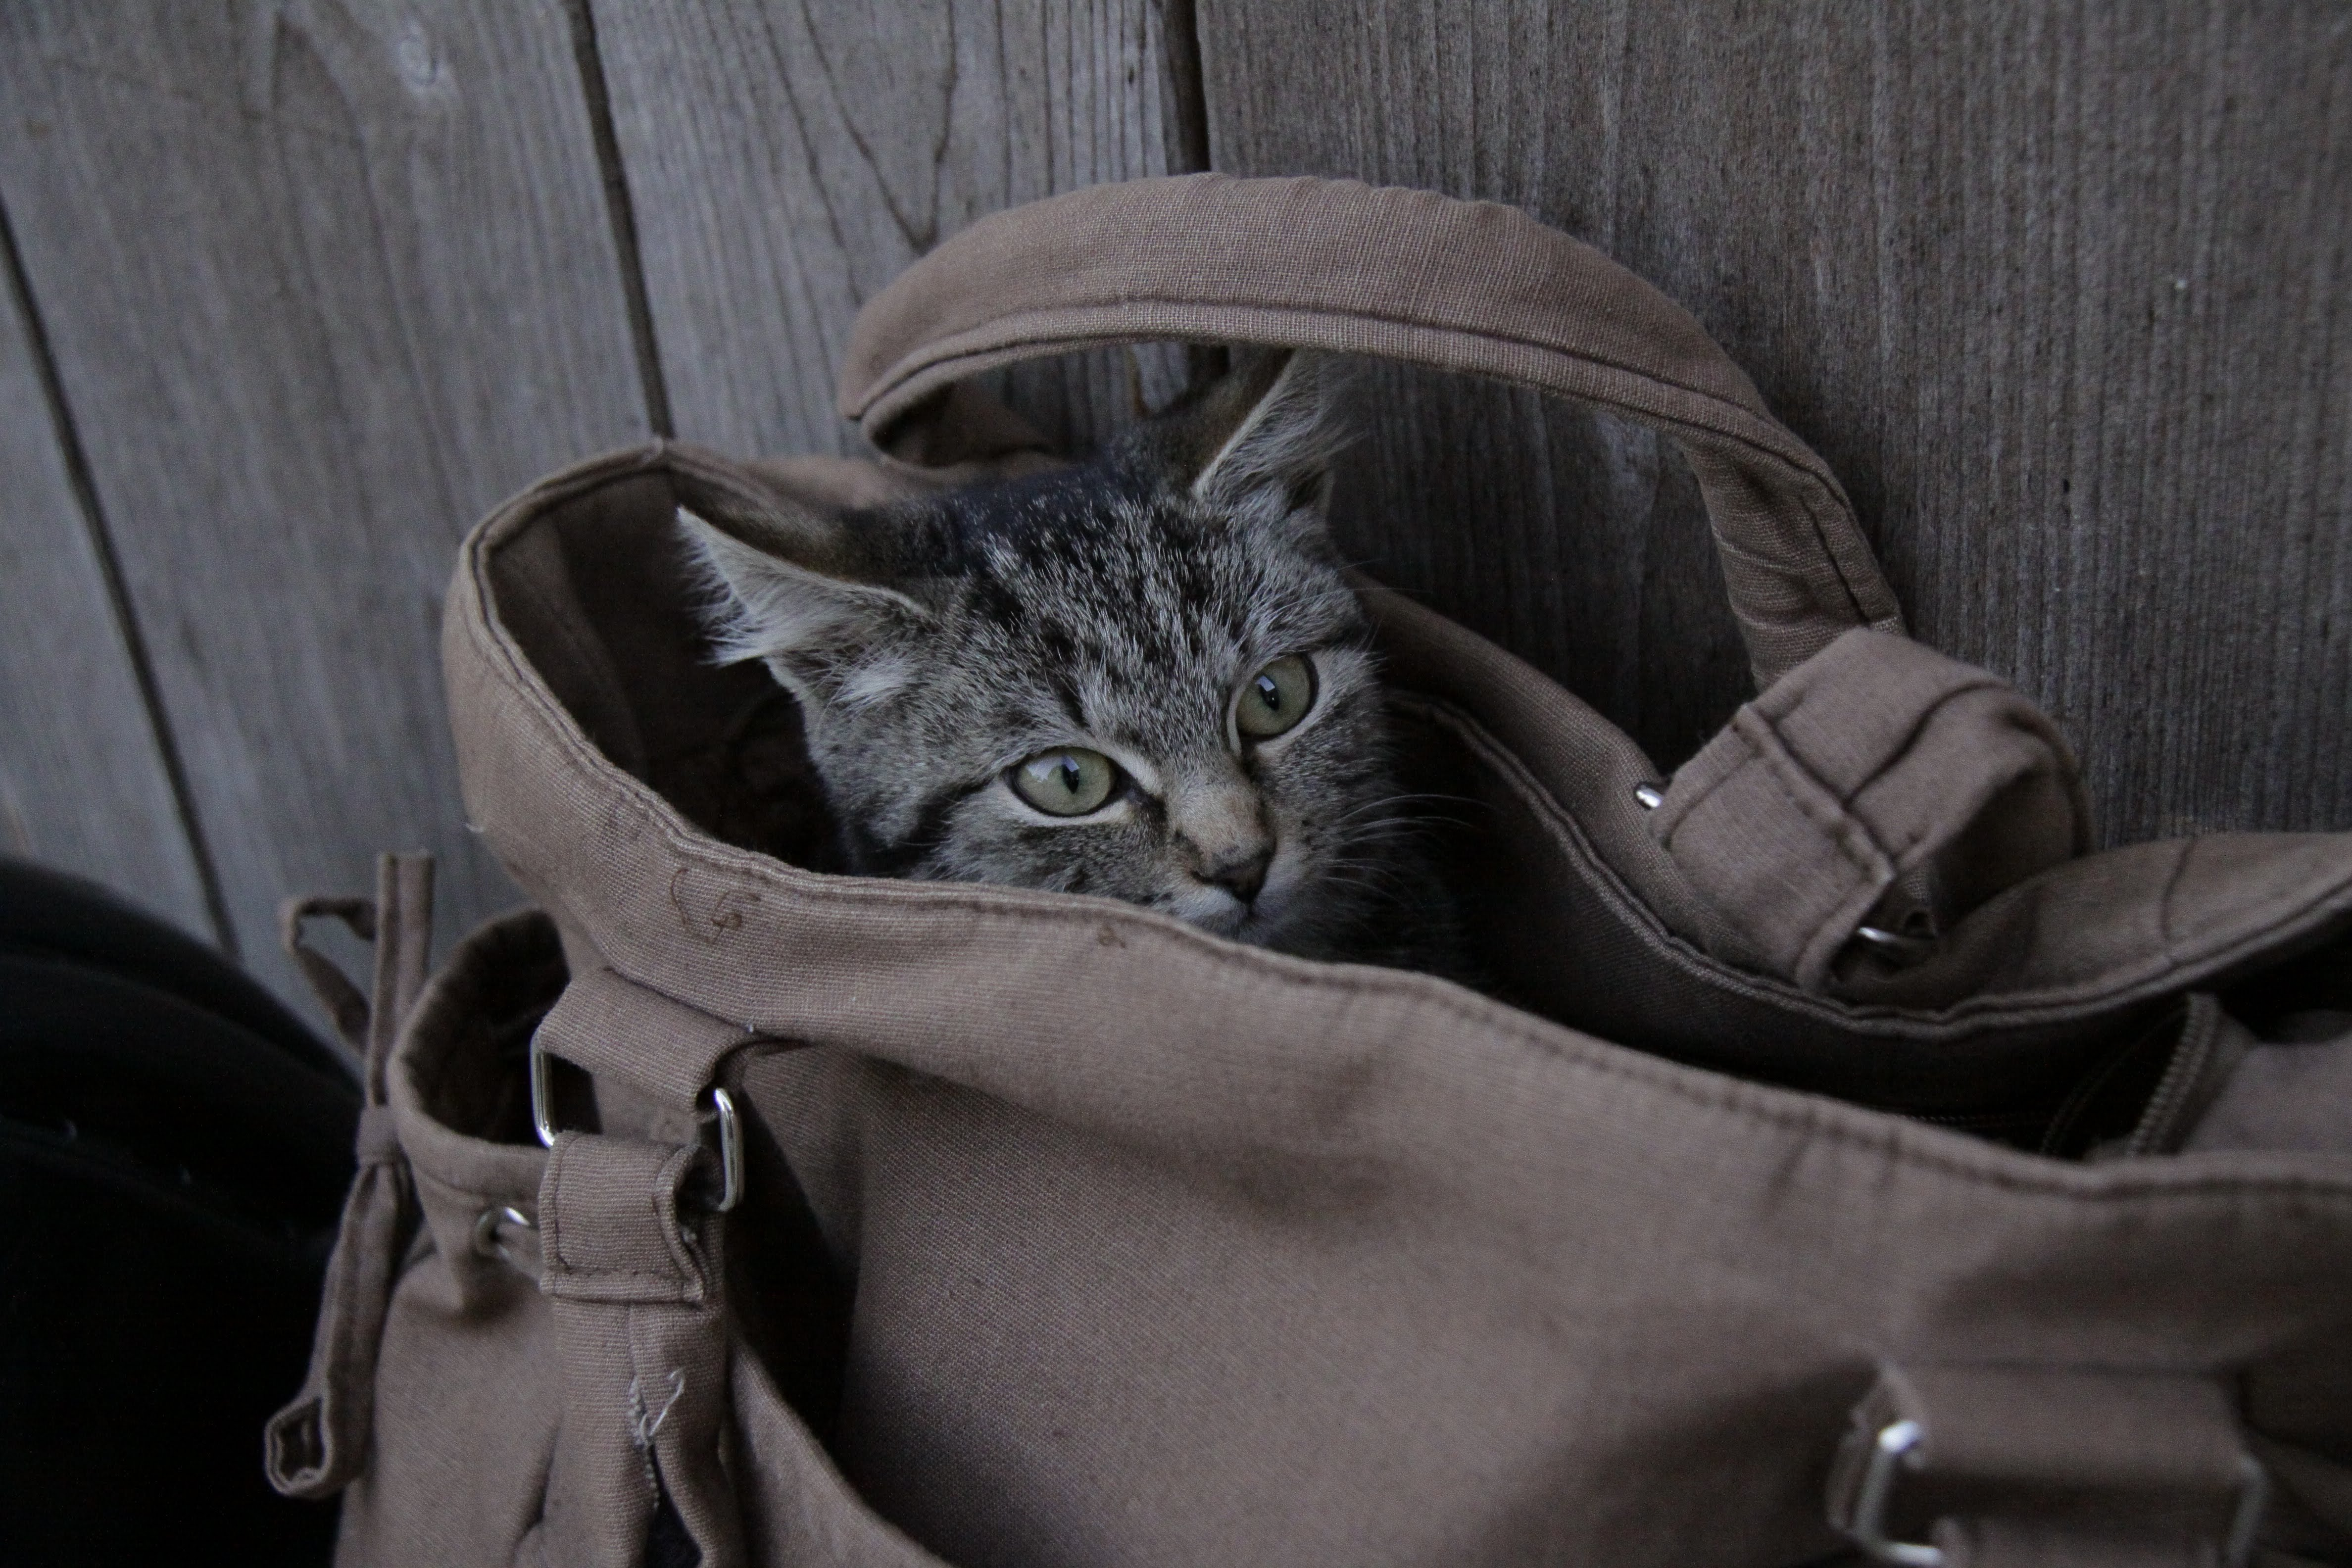 silver tabby cat in brown leather bag